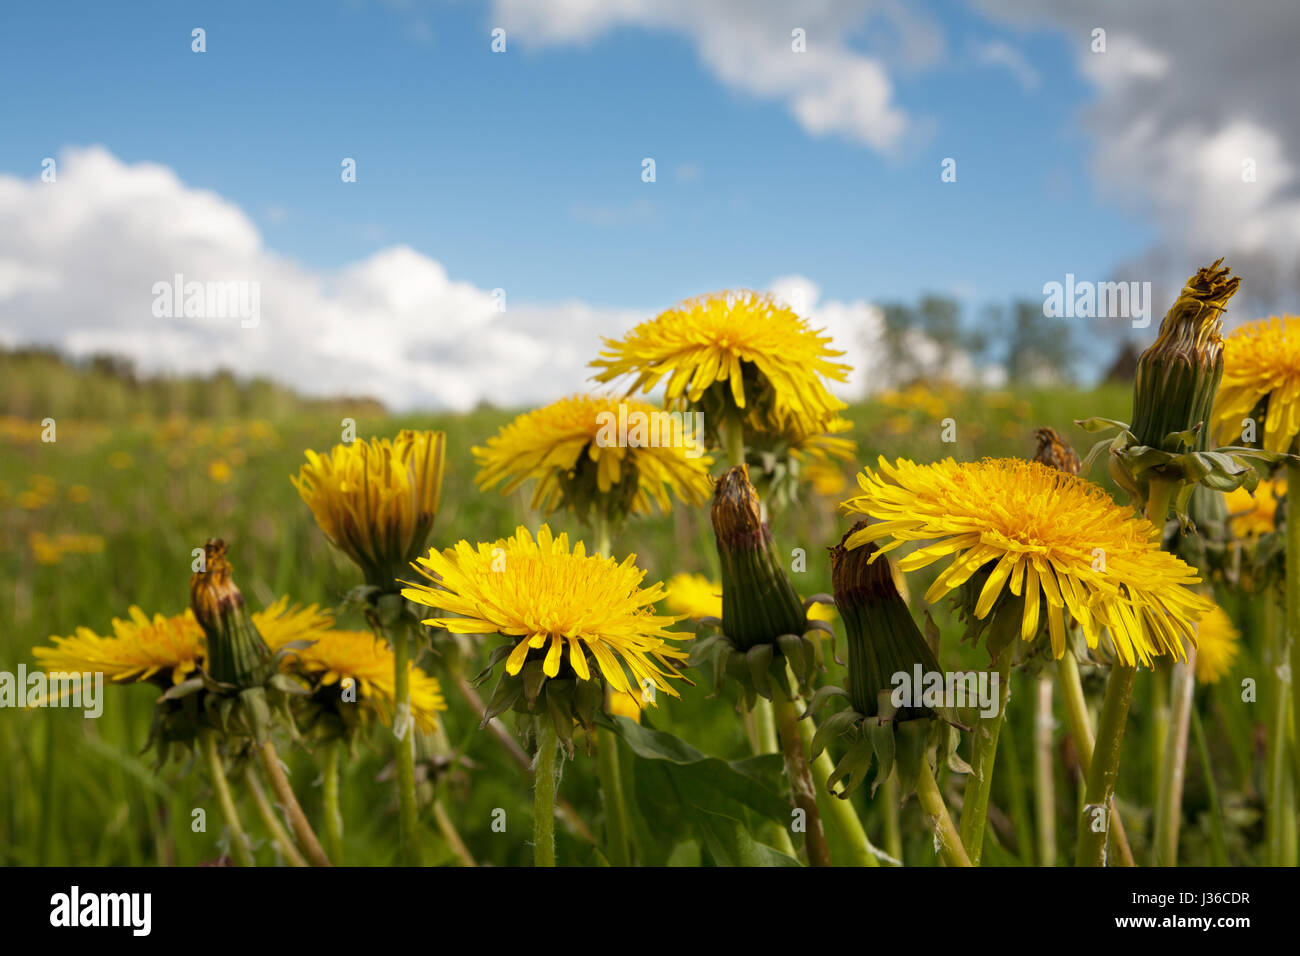 Yellow dandelion flowers with leaves on the wield in green grass. Blue sky in background. - Stock Image